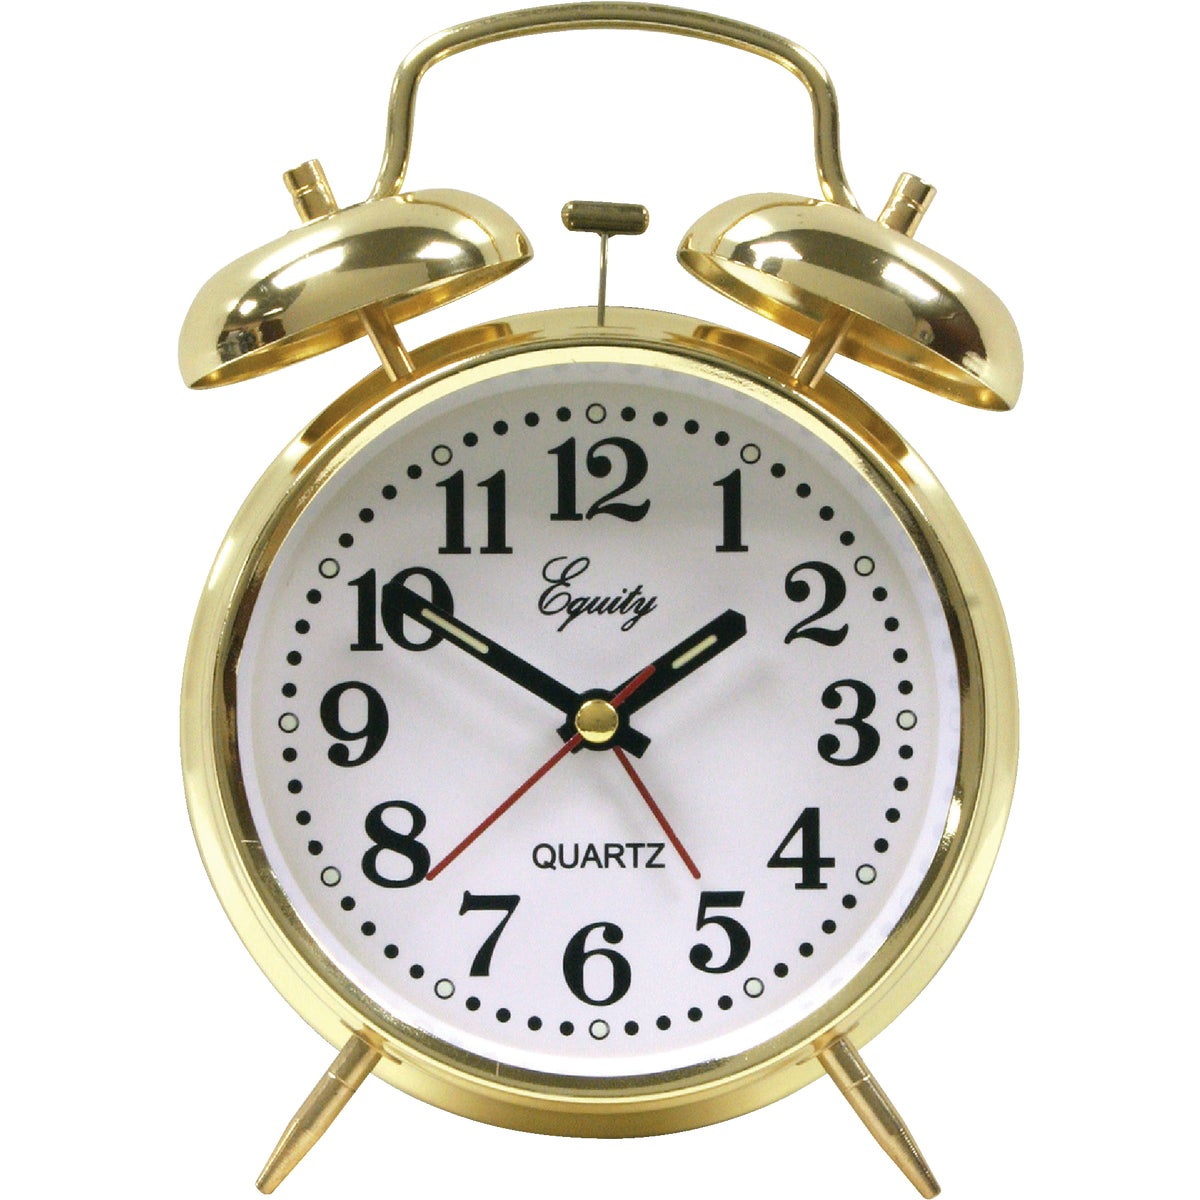 KEYWIND ALARM CLOCK - 3191AT by Geneva Clock Company